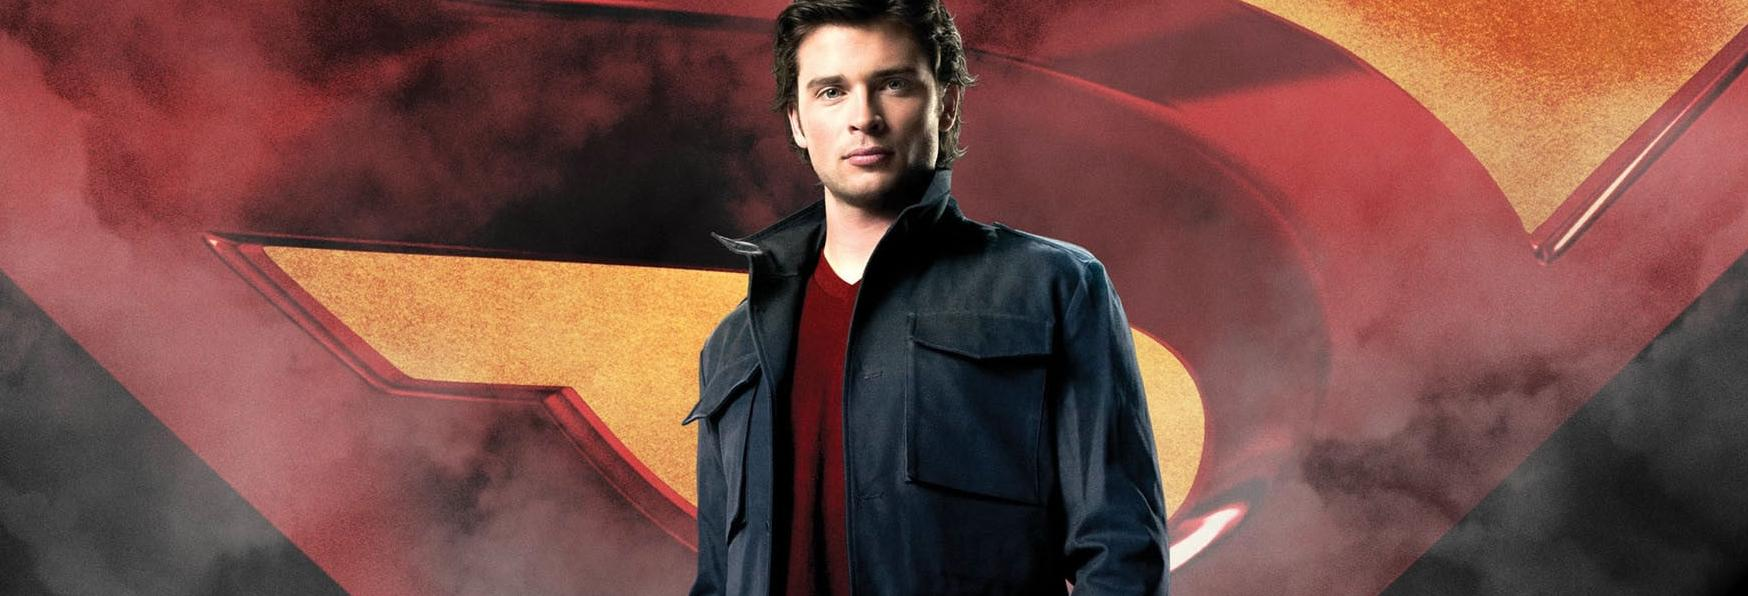 Tom Welling di Smallville interpreterebbe volentieri Batman nell'Arrowverse